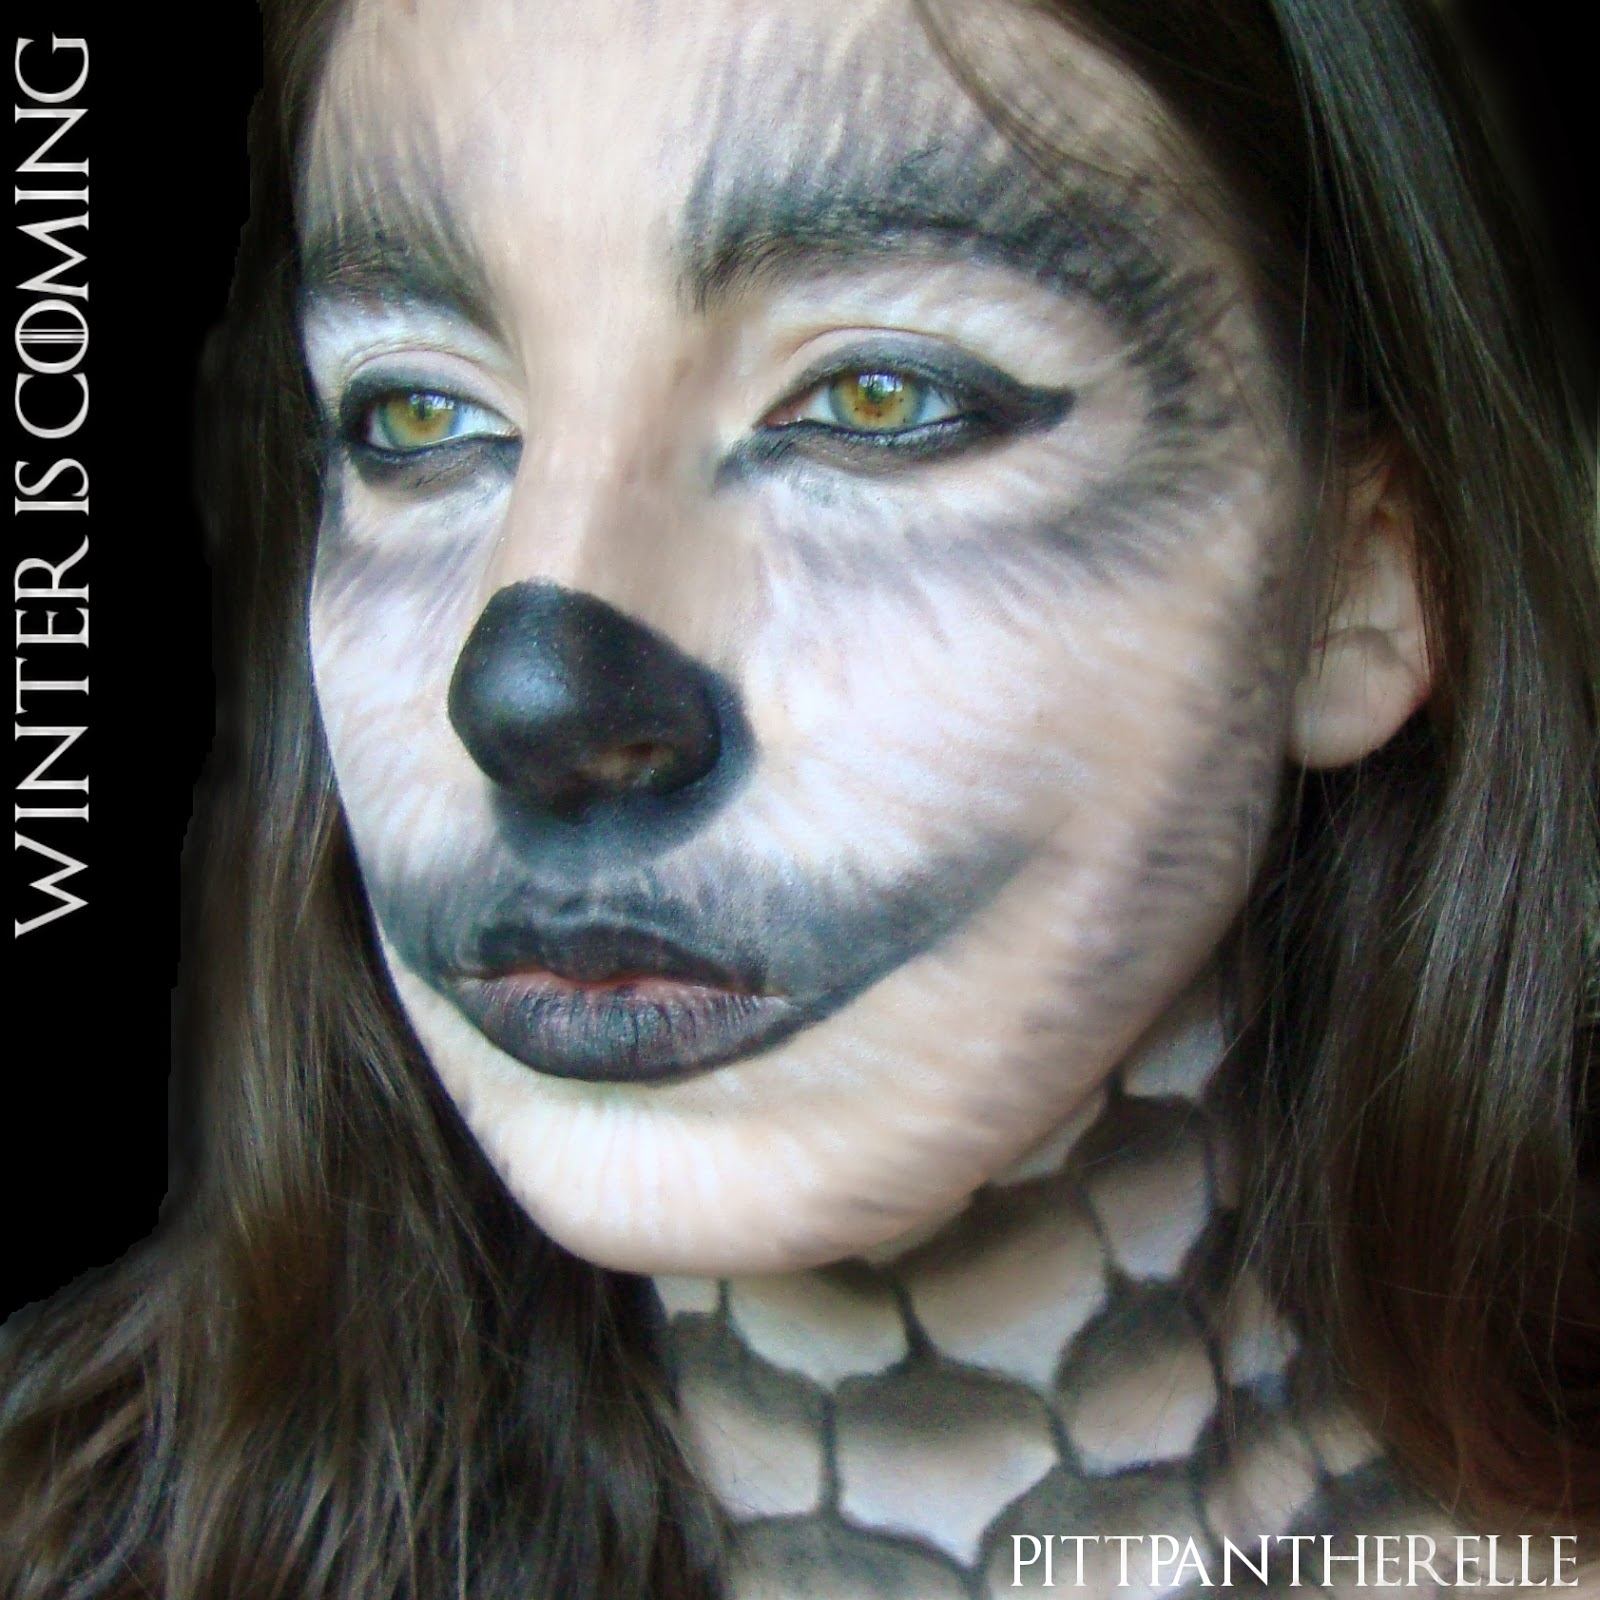 Pittpanthermua game of thrones makeup collaboration game of thrones makeup collaboration baditri Images